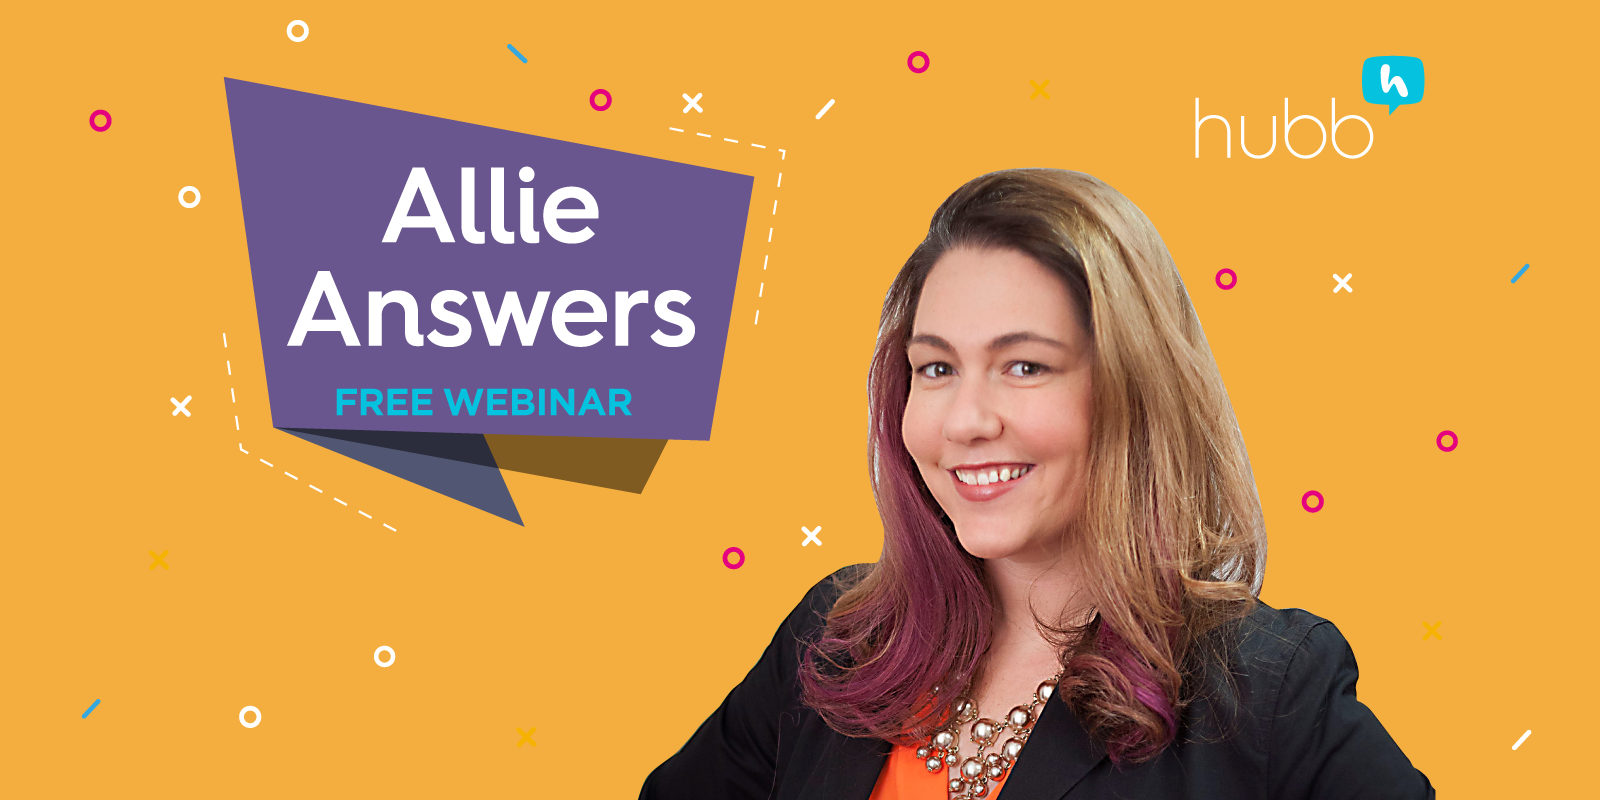 Event planning questions? Allie Magyar has answers